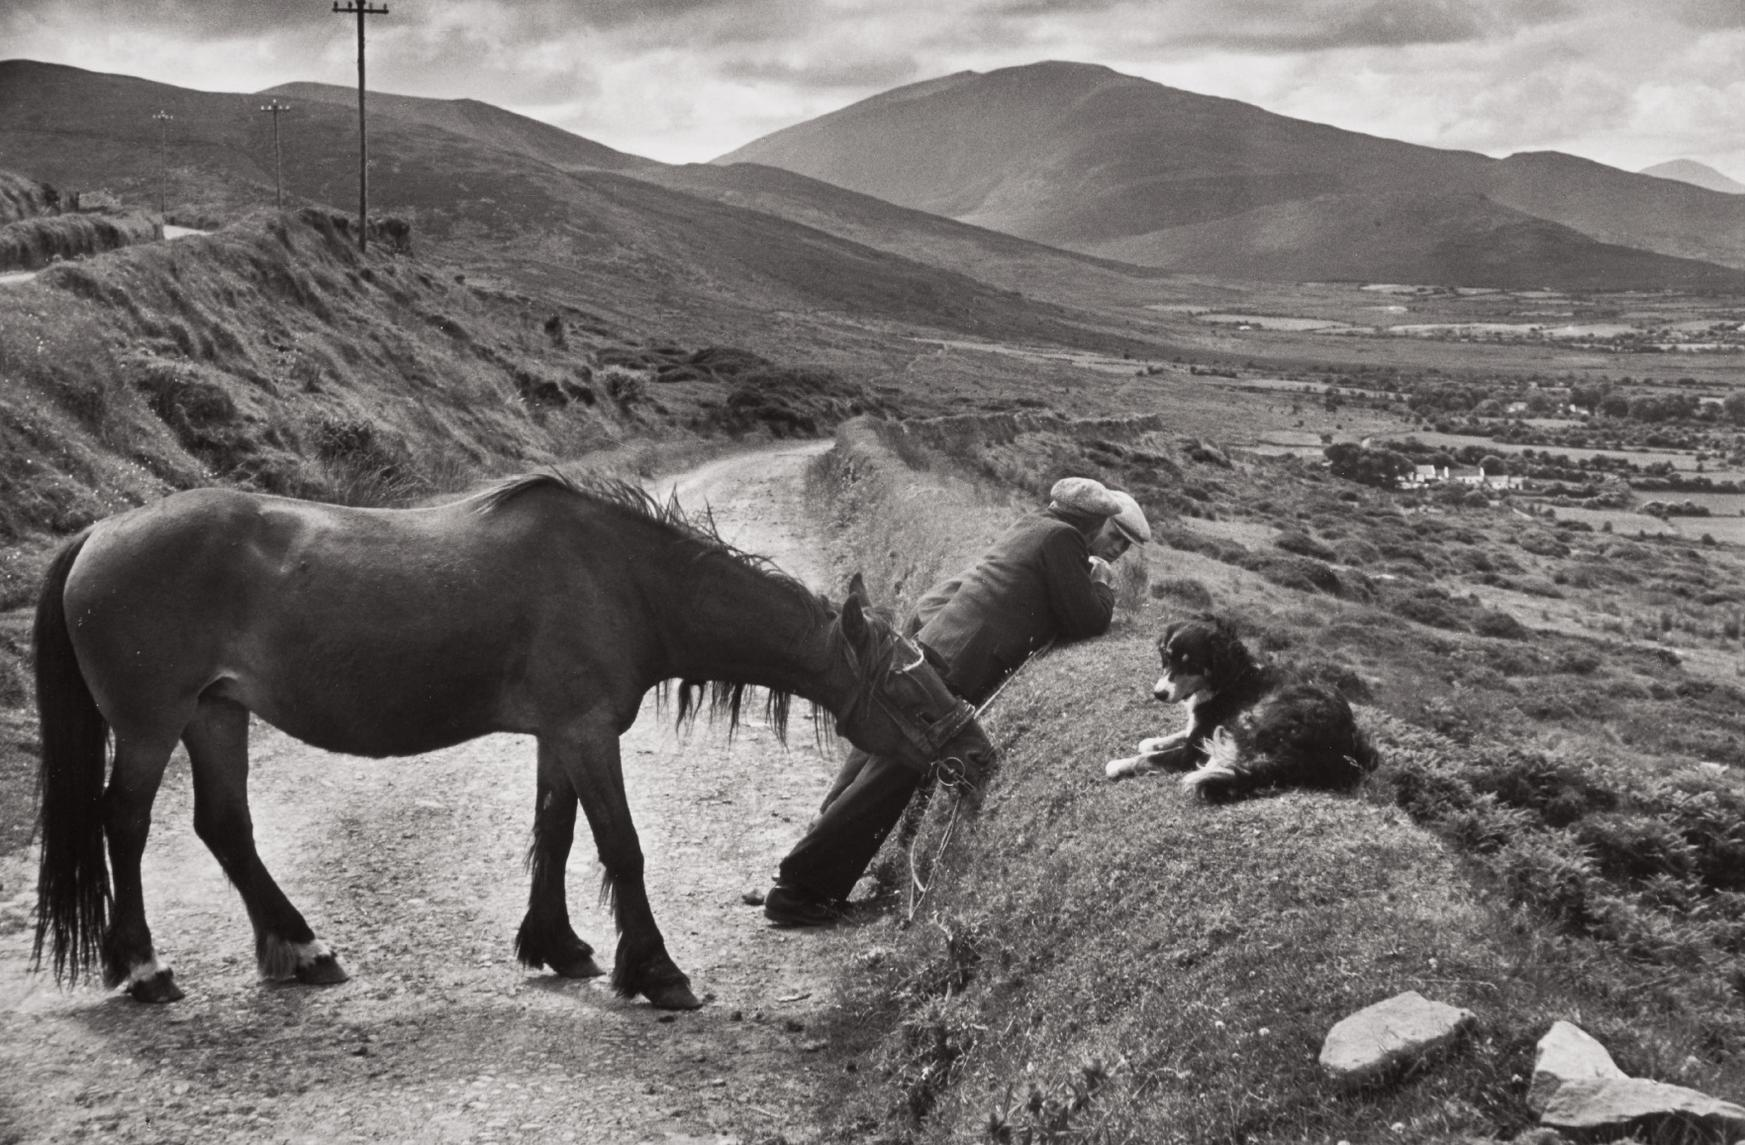 Henri Cartier-Bresson-County Kerry, Ireland-1952